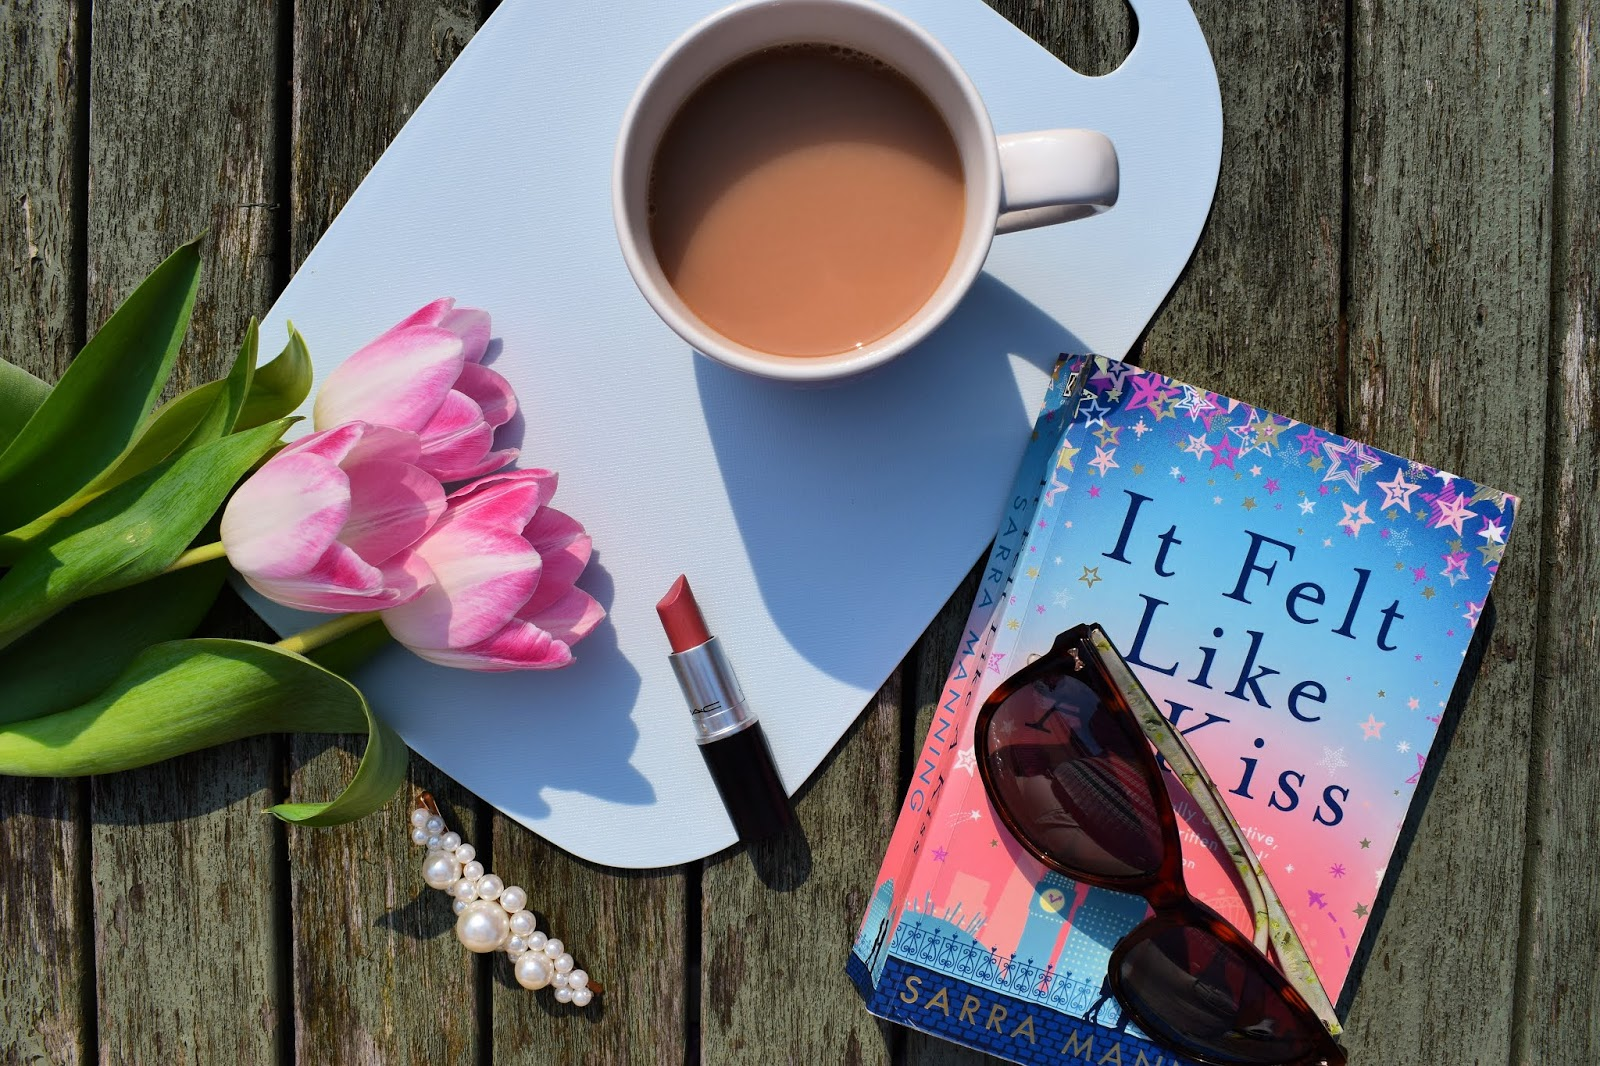 Book review  It felt like a kiss - Sarra Manning